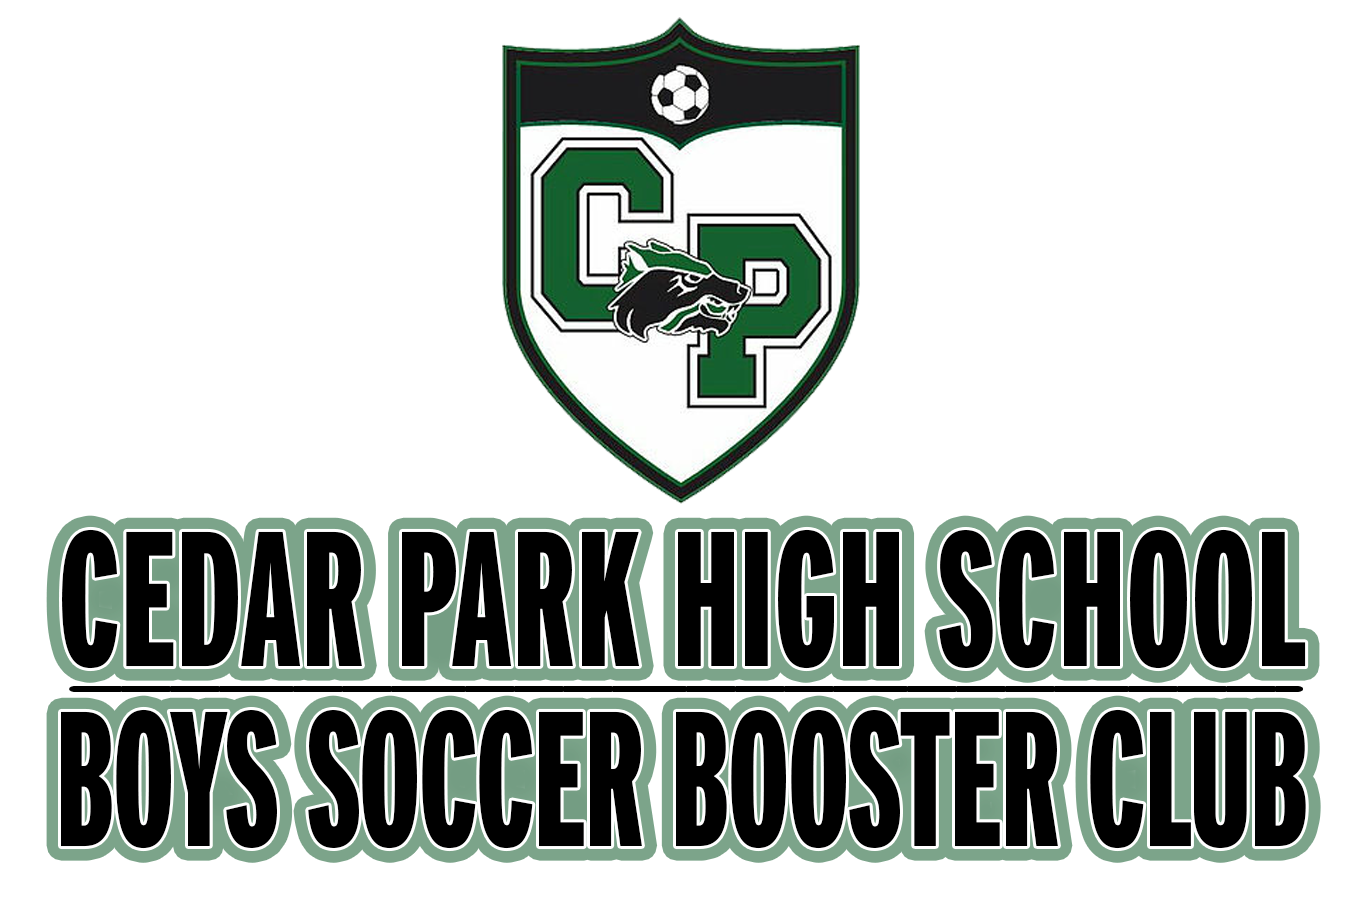 Cedar Park High School Boys Soccer Booster Club